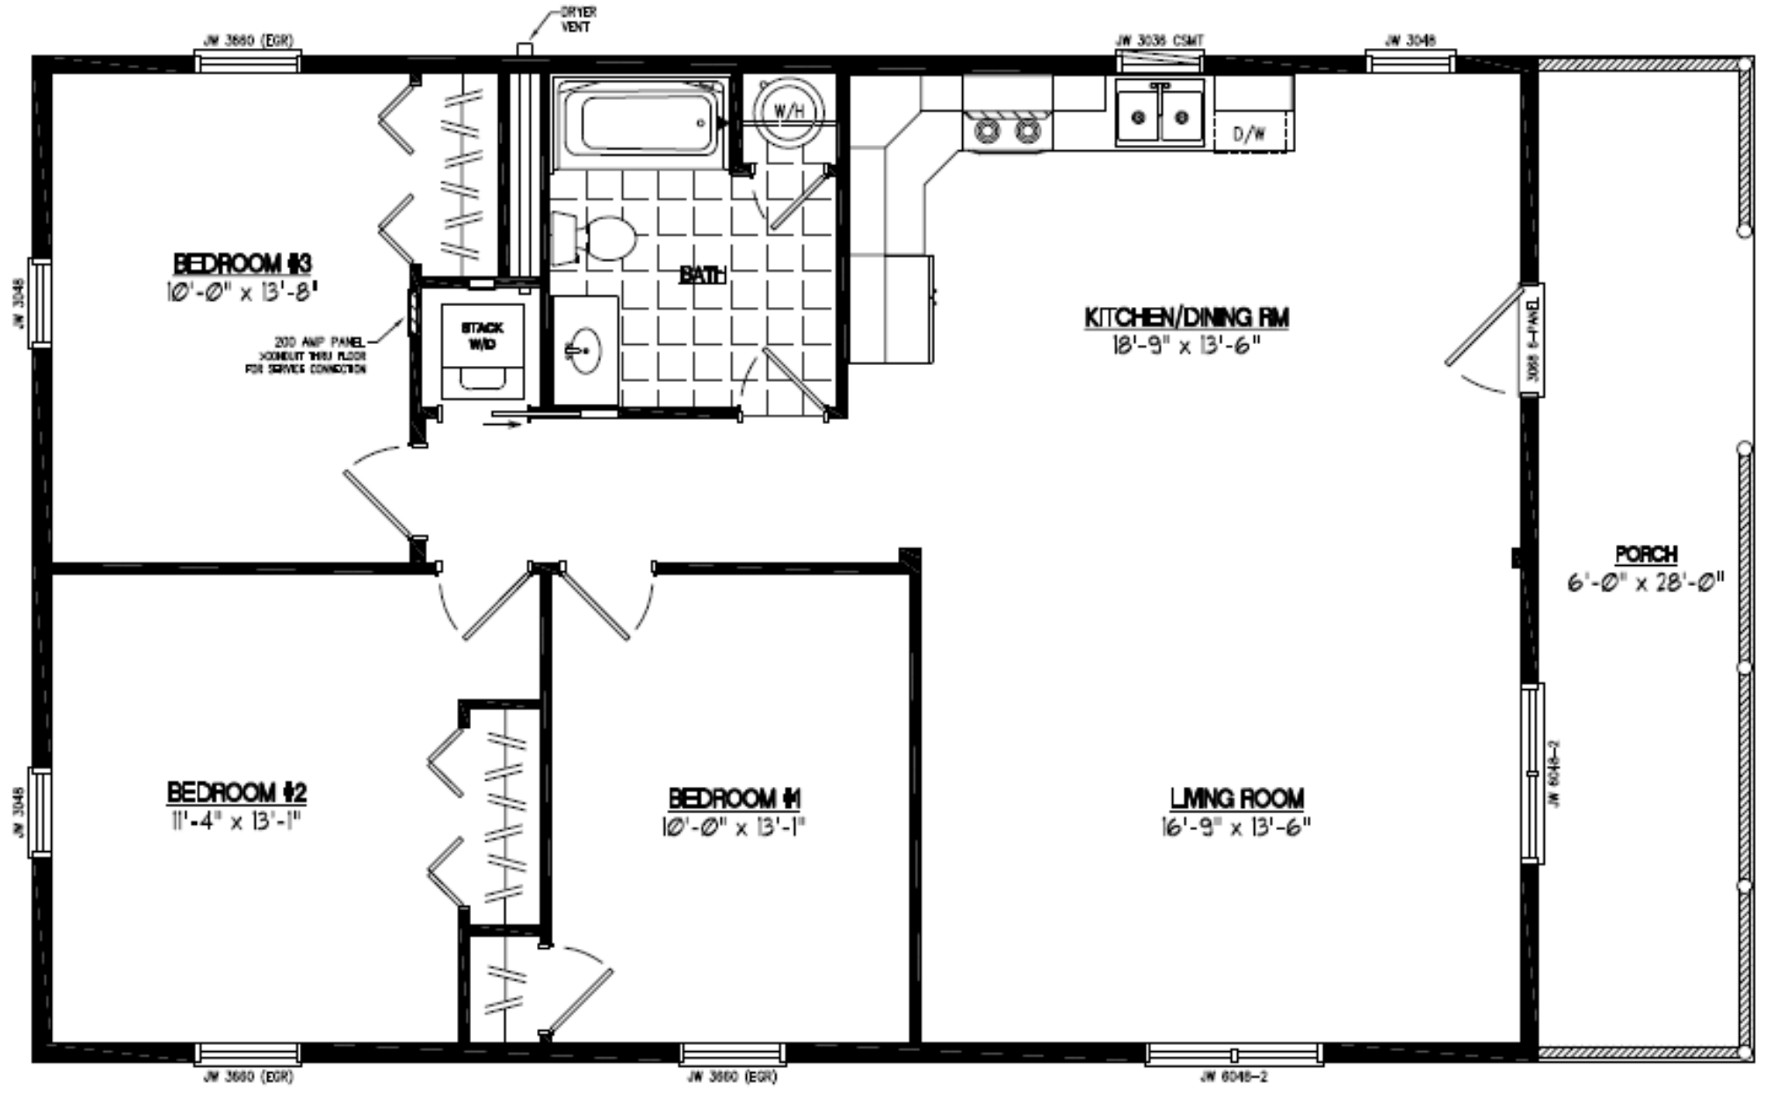 28x48 house plans 28x48 house plans mibhouse com